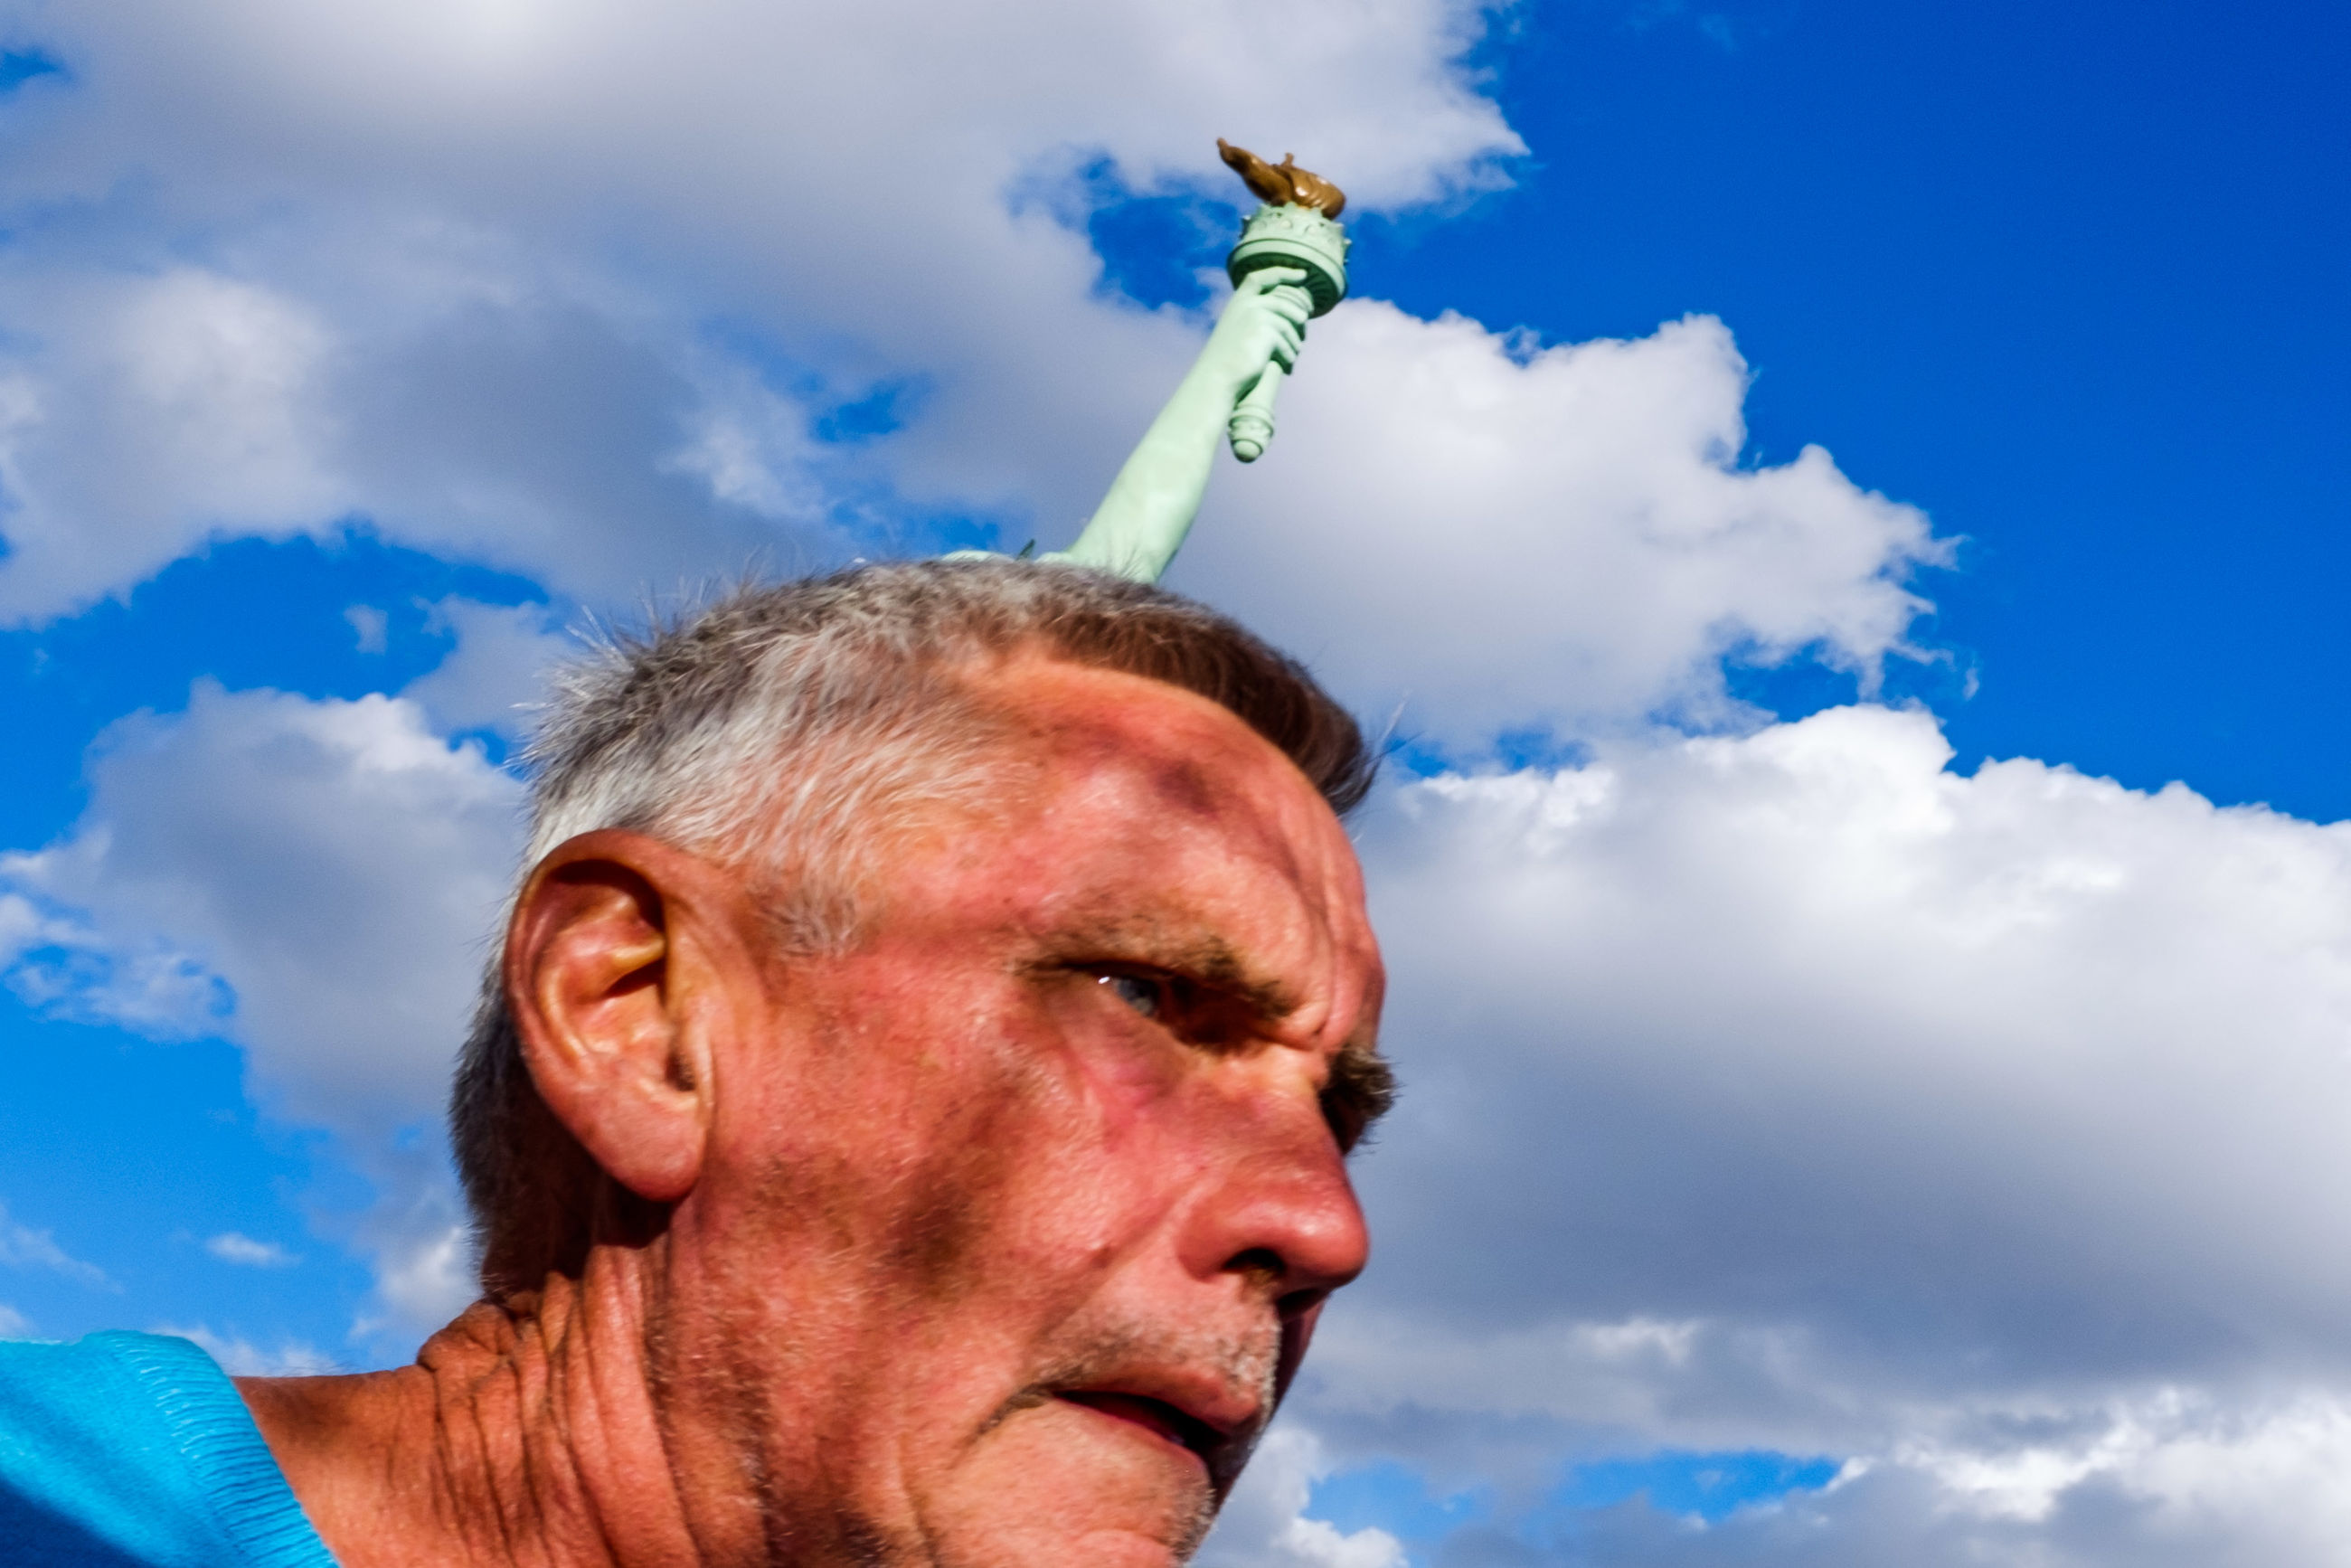 cloud - sky, sky, low angle view, real people, day, one person, outdoors, blue, nature, people